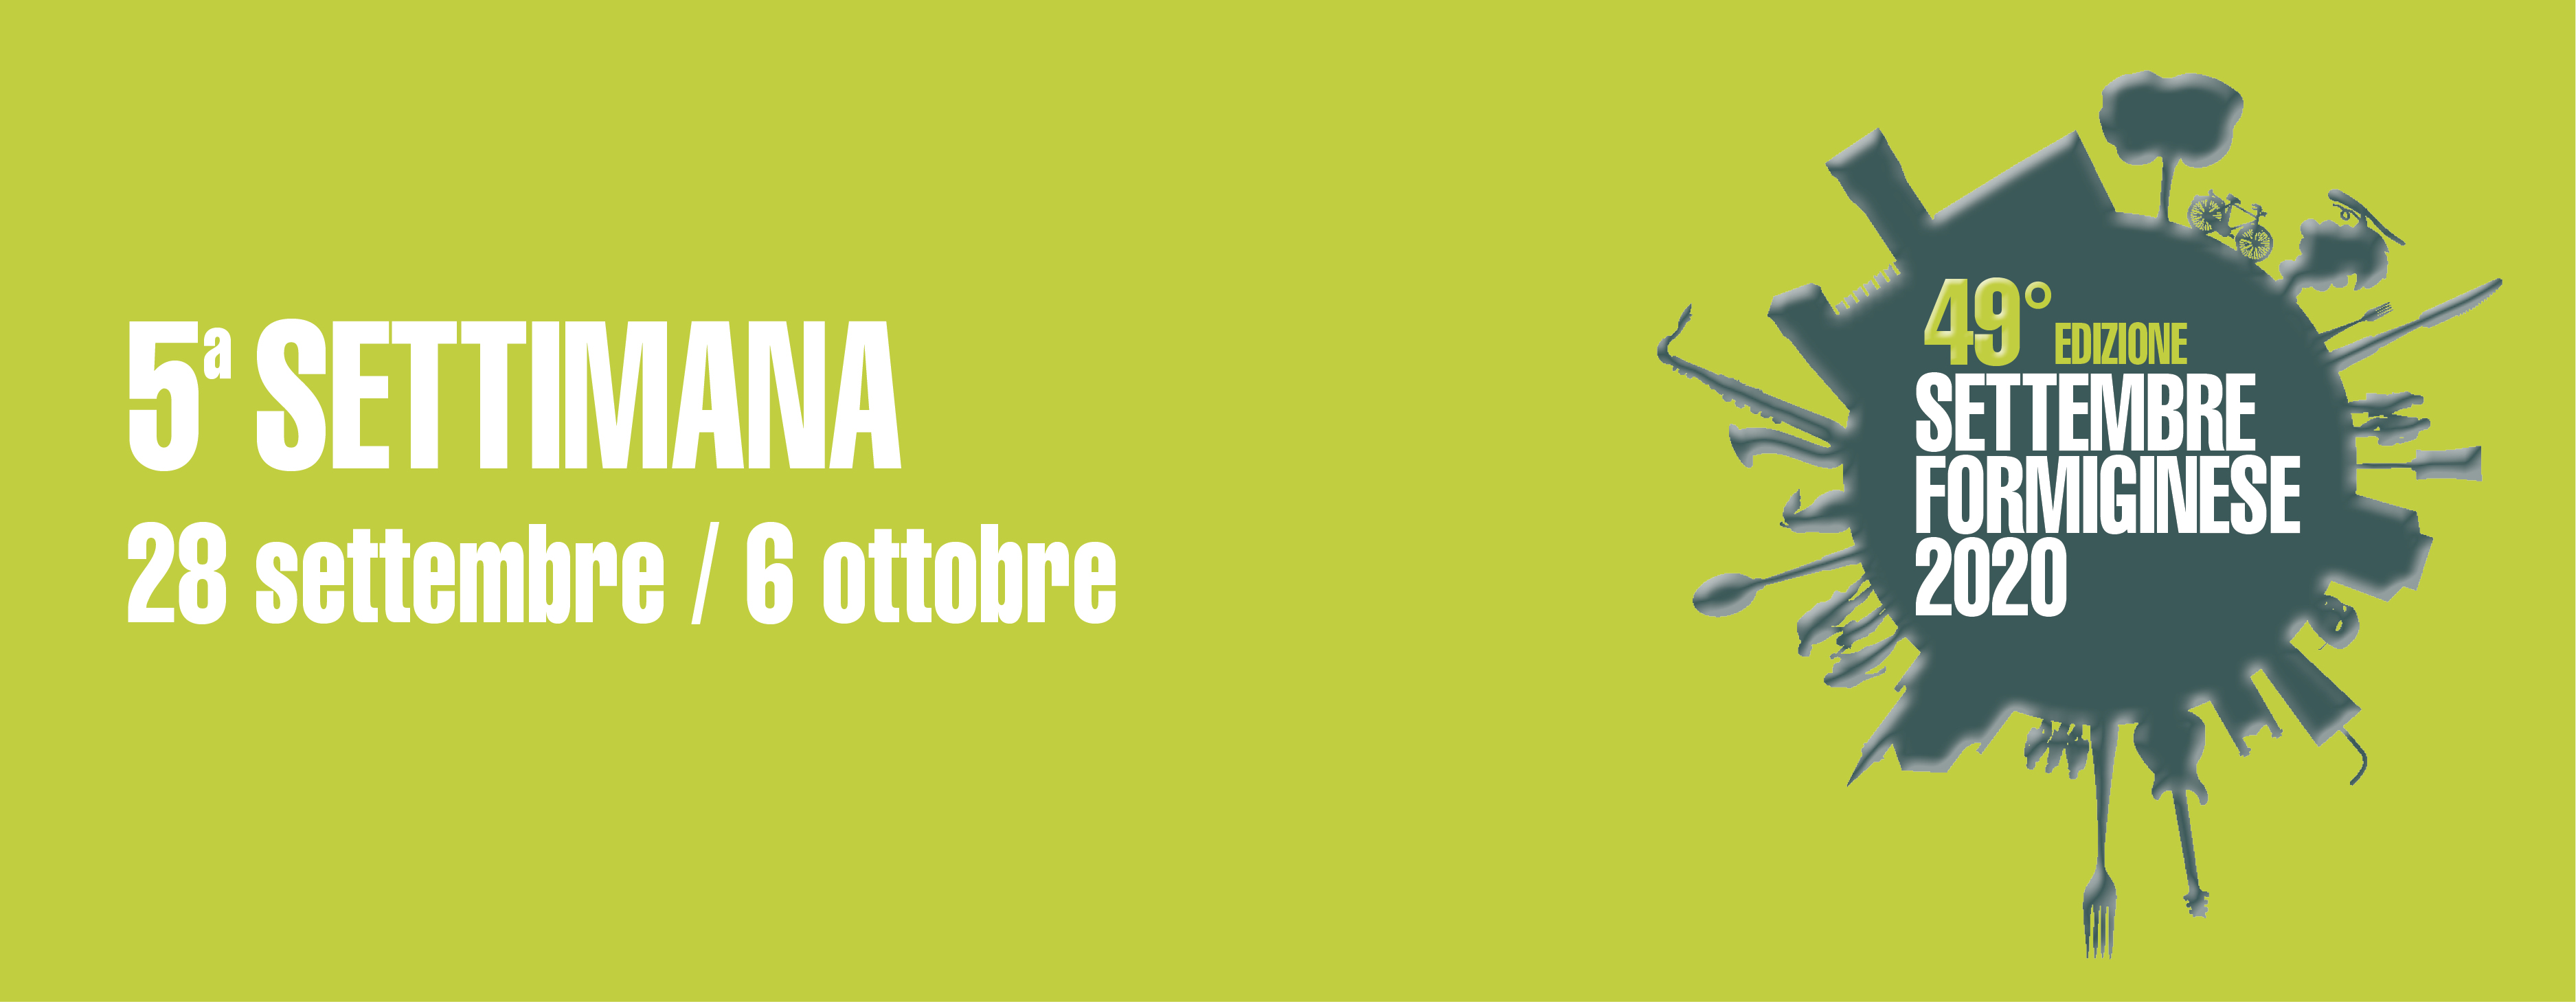 49° Settembre formiginese